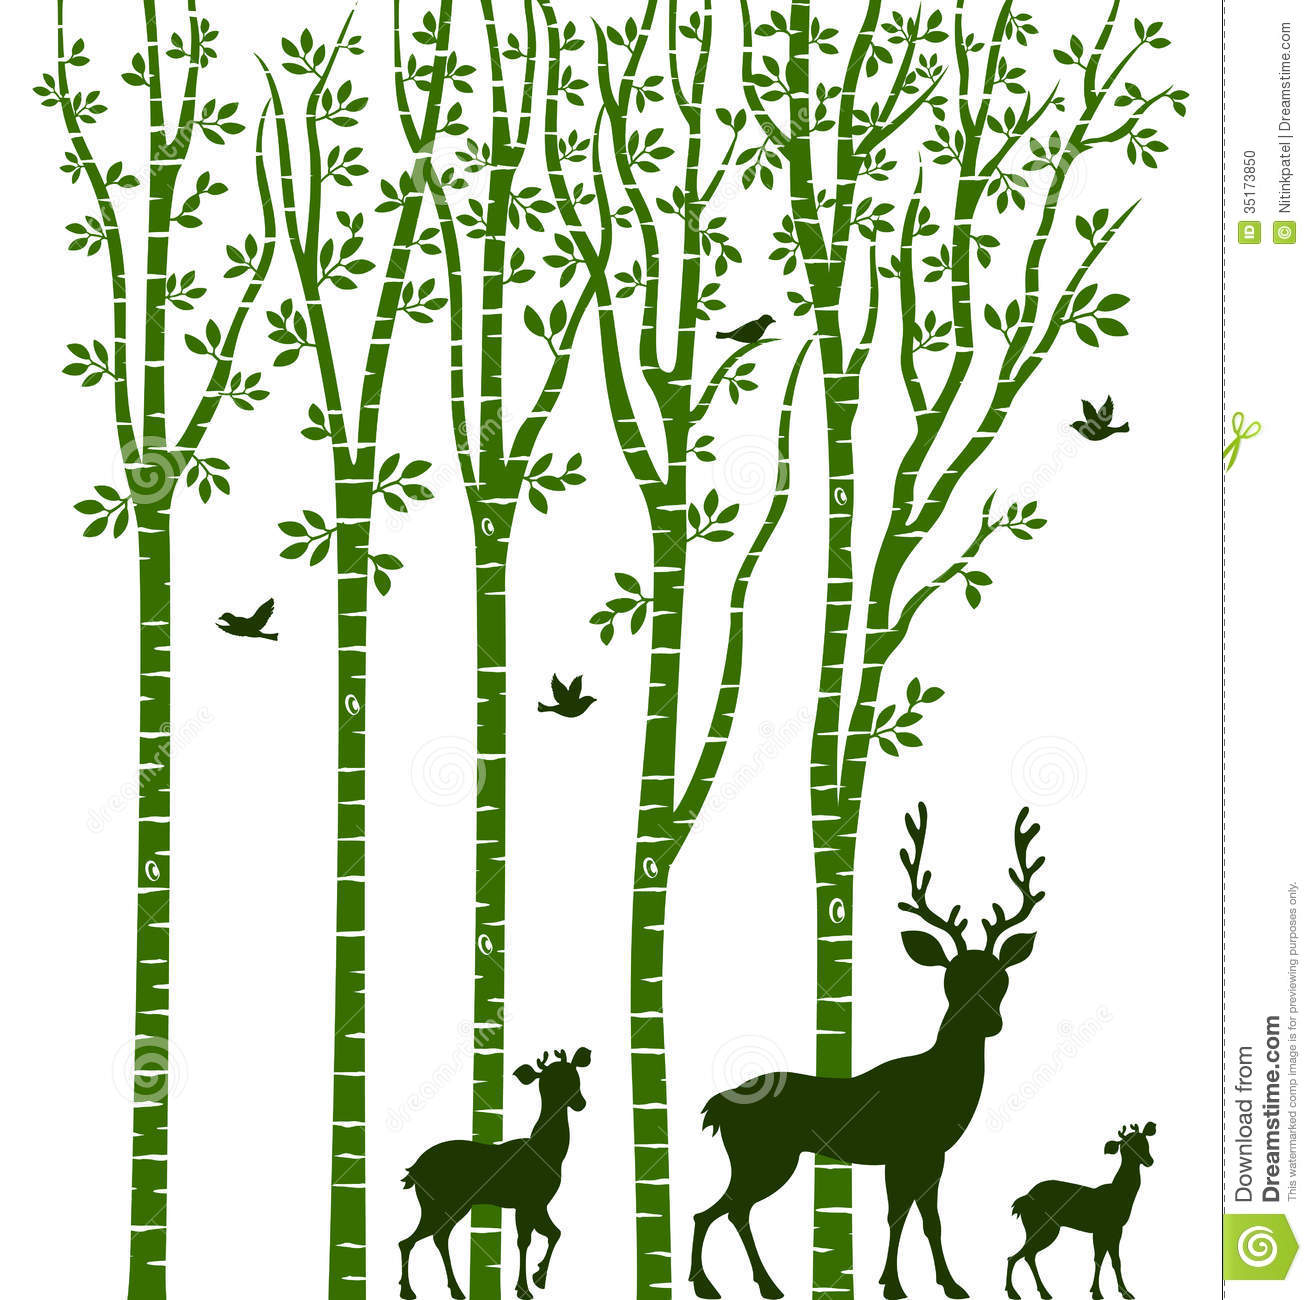 free online personals in birch tree 9,737 best birch tree silhouette free vector download for commercial use in ai, eps, cdr, svg vector illustration graphic art design formatbirch tree, tree silhouette, birch silhouette, birch tree forest, silhouette birch leaves, pine tree silhouette, oak tree silhouette birch tree silhouette, free vector, birch tree silhouette, birch tree.